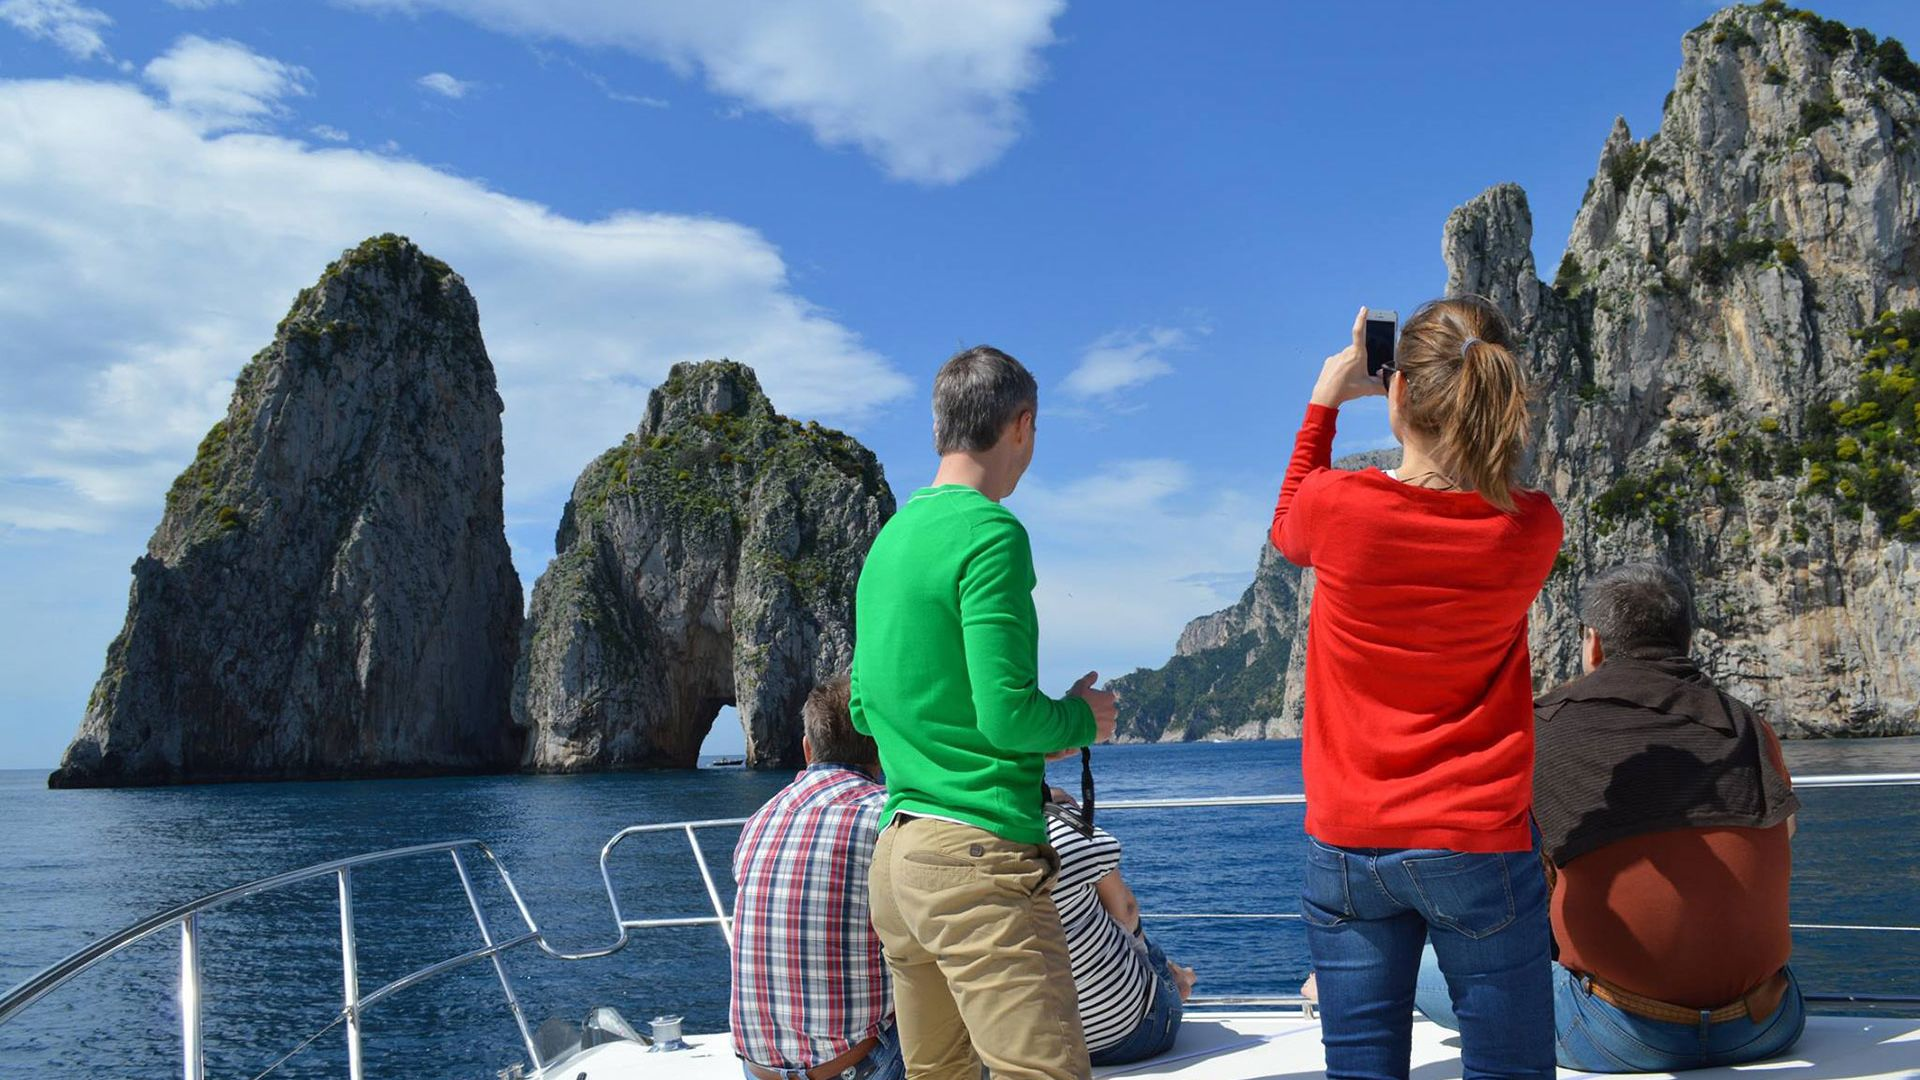 Family observing beautiful view of island from boat.